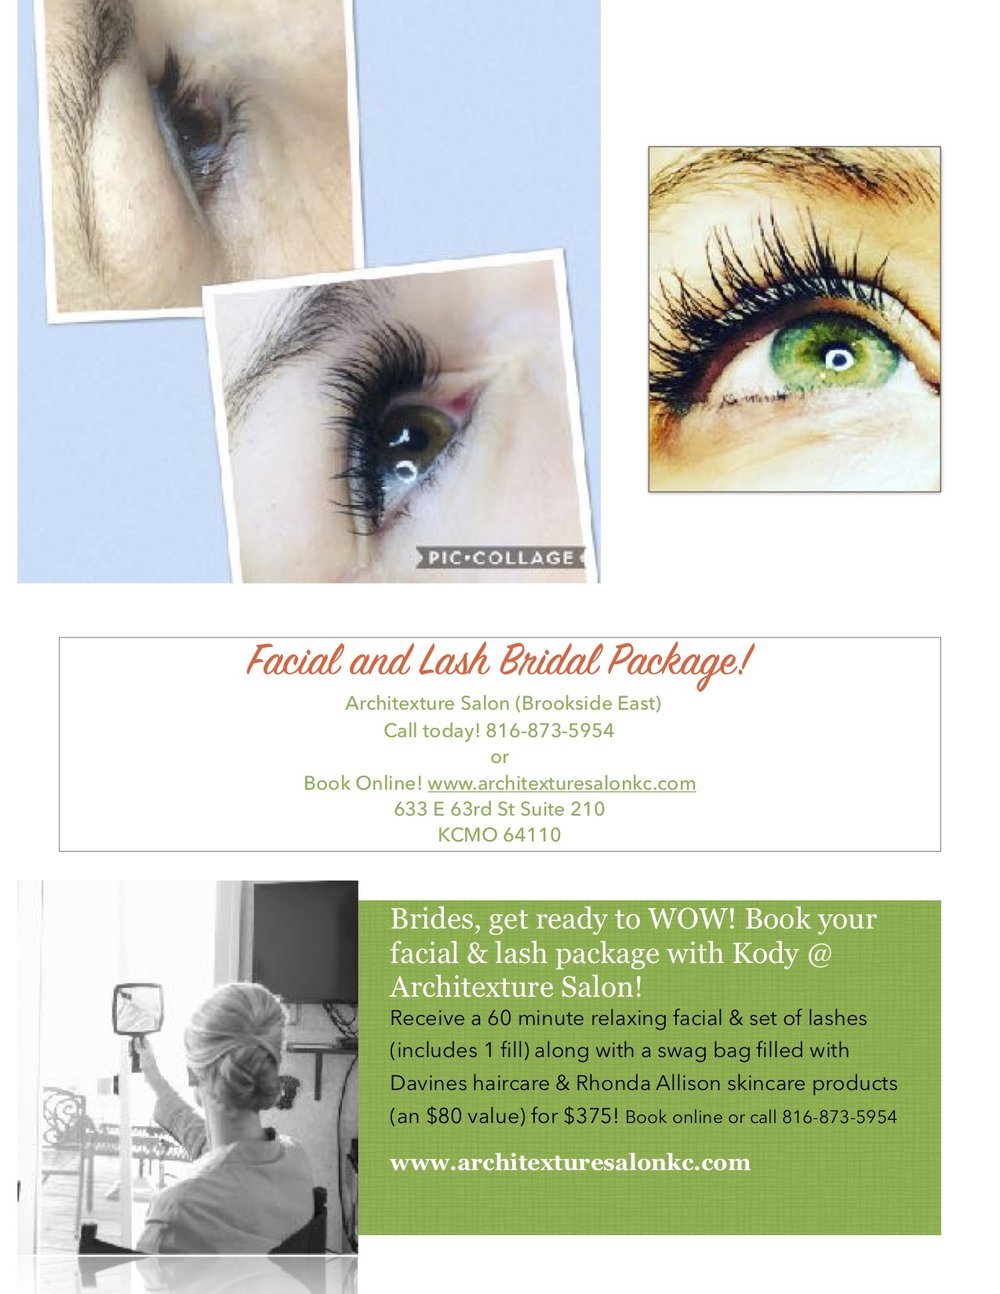 Wedding Day Prep Package - KC Brides! Pamper yourself!